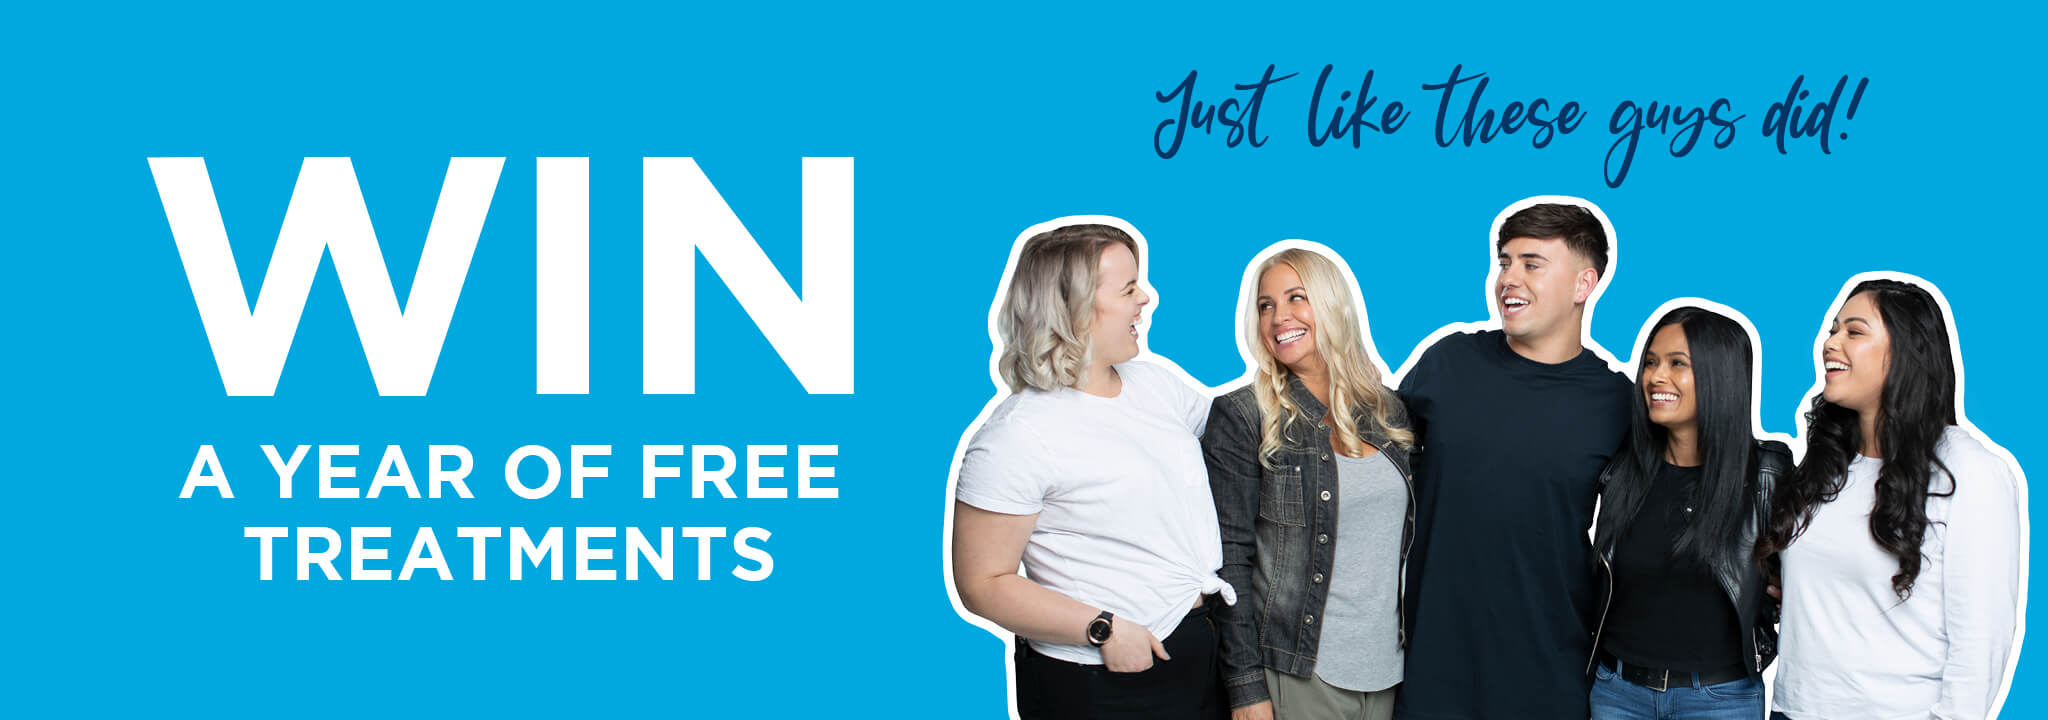 Win a year of free treatments